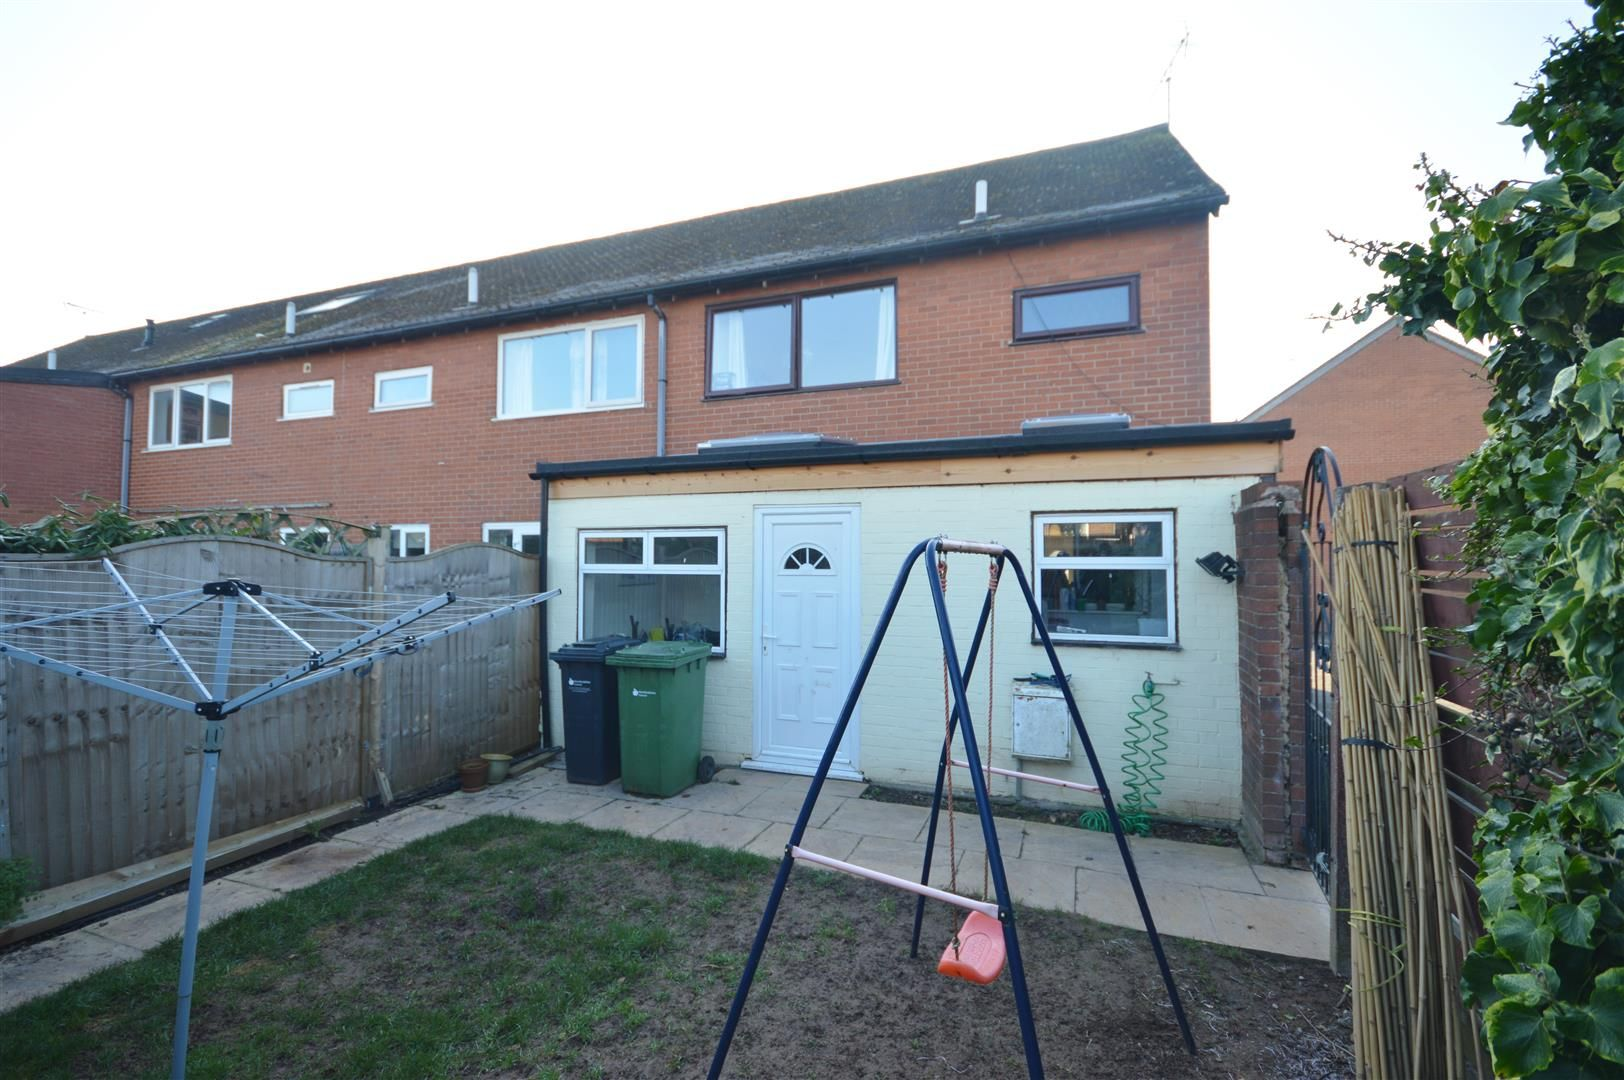 3 bed end-of-terrace for sale in Leominster 9